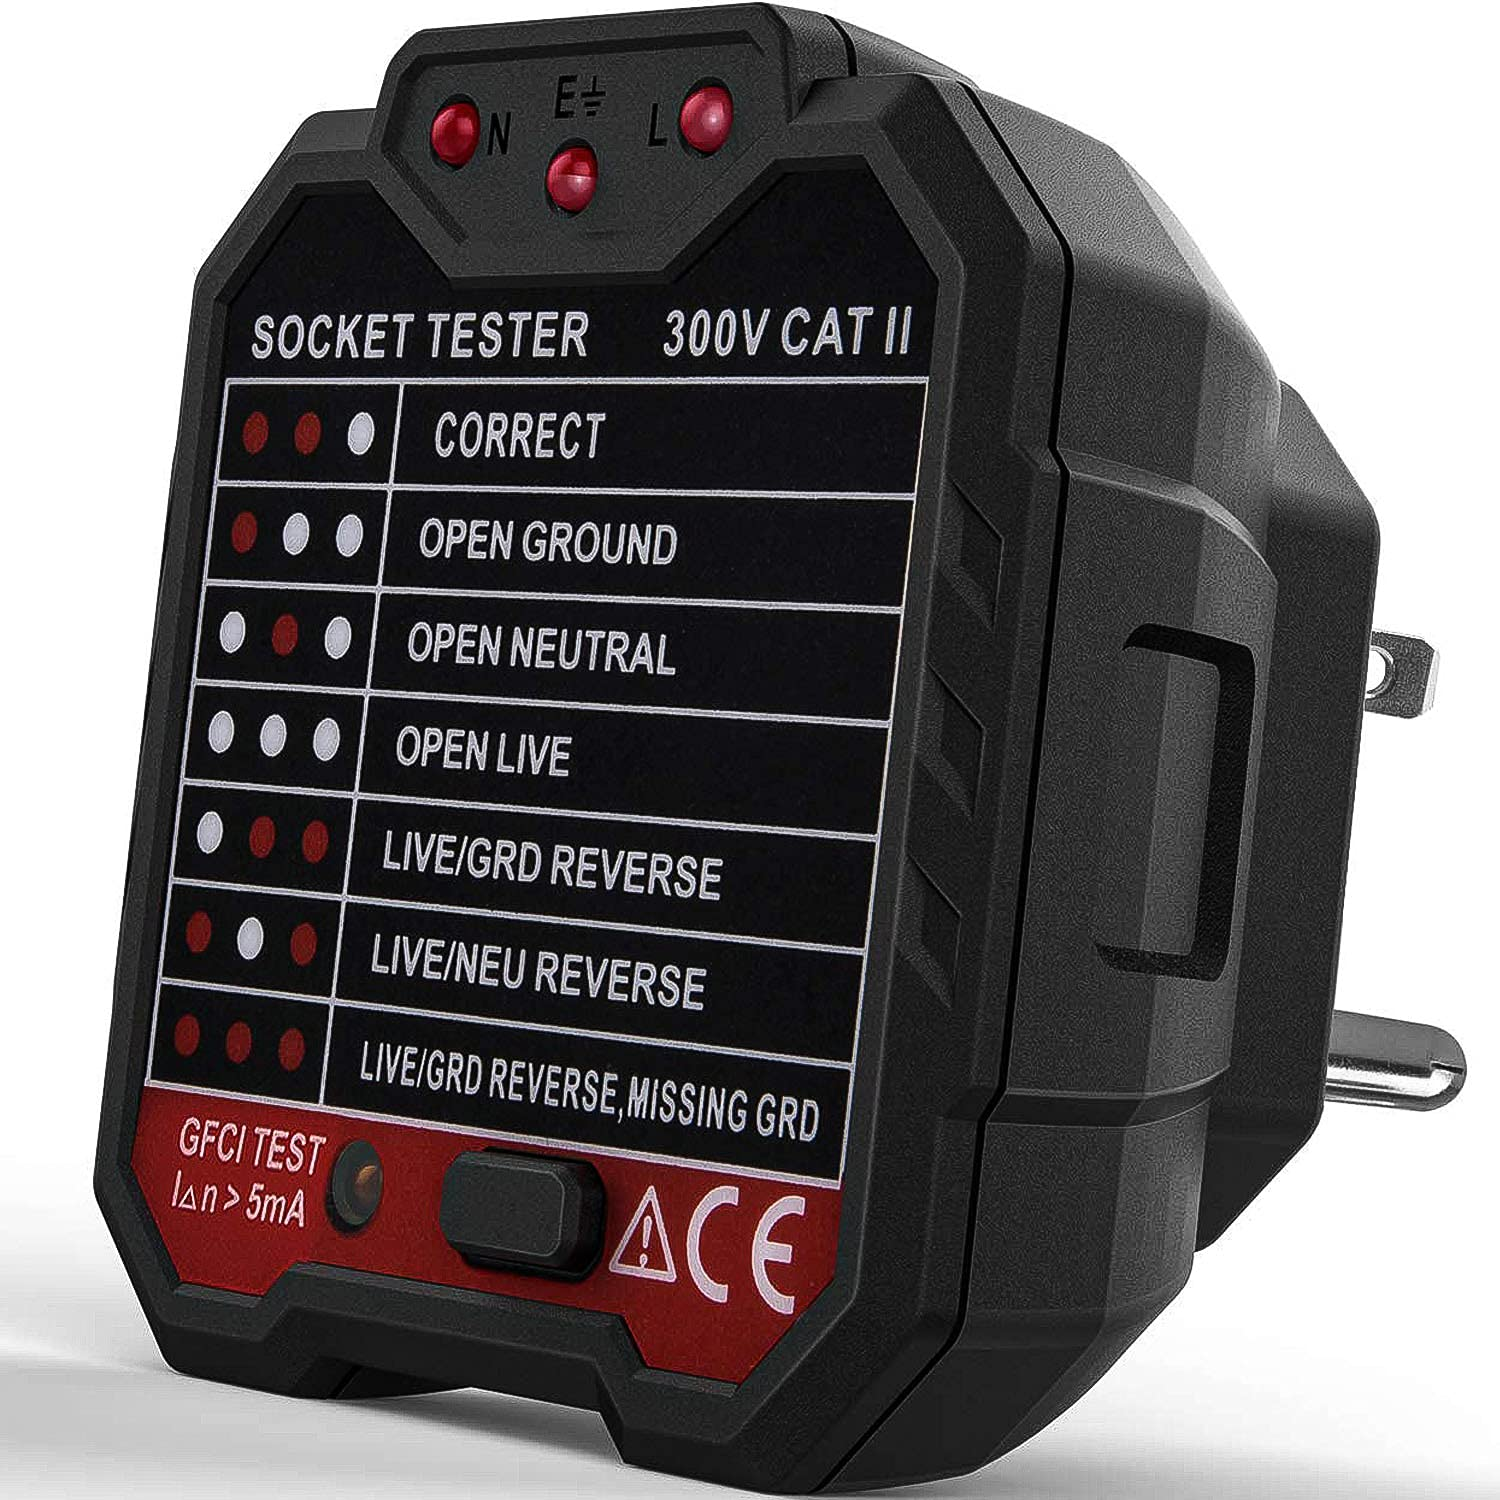 Challenge the lowest price of Japan ☆ Socket Tester ToHayie GFCI 90V-120V Tampa Mall Automatic Vol Outlet